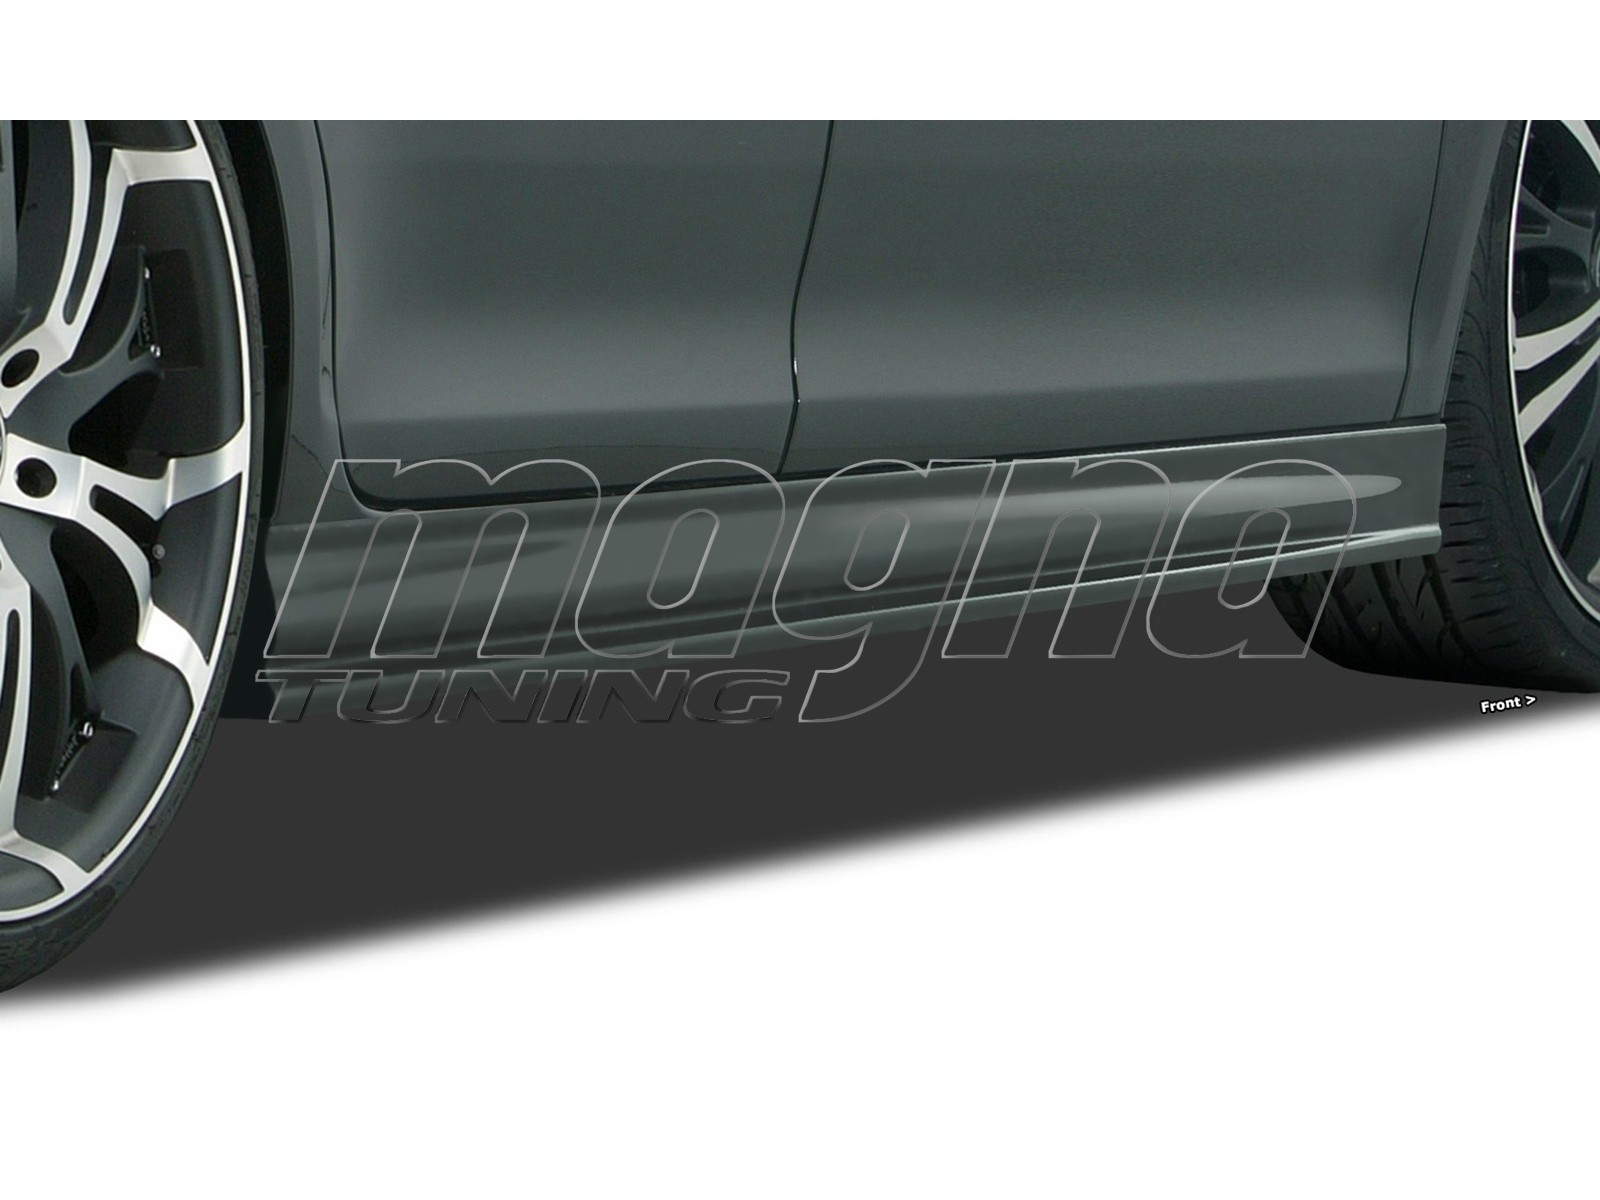 Chevrolet Aveo T300 Evolva Side Skirts